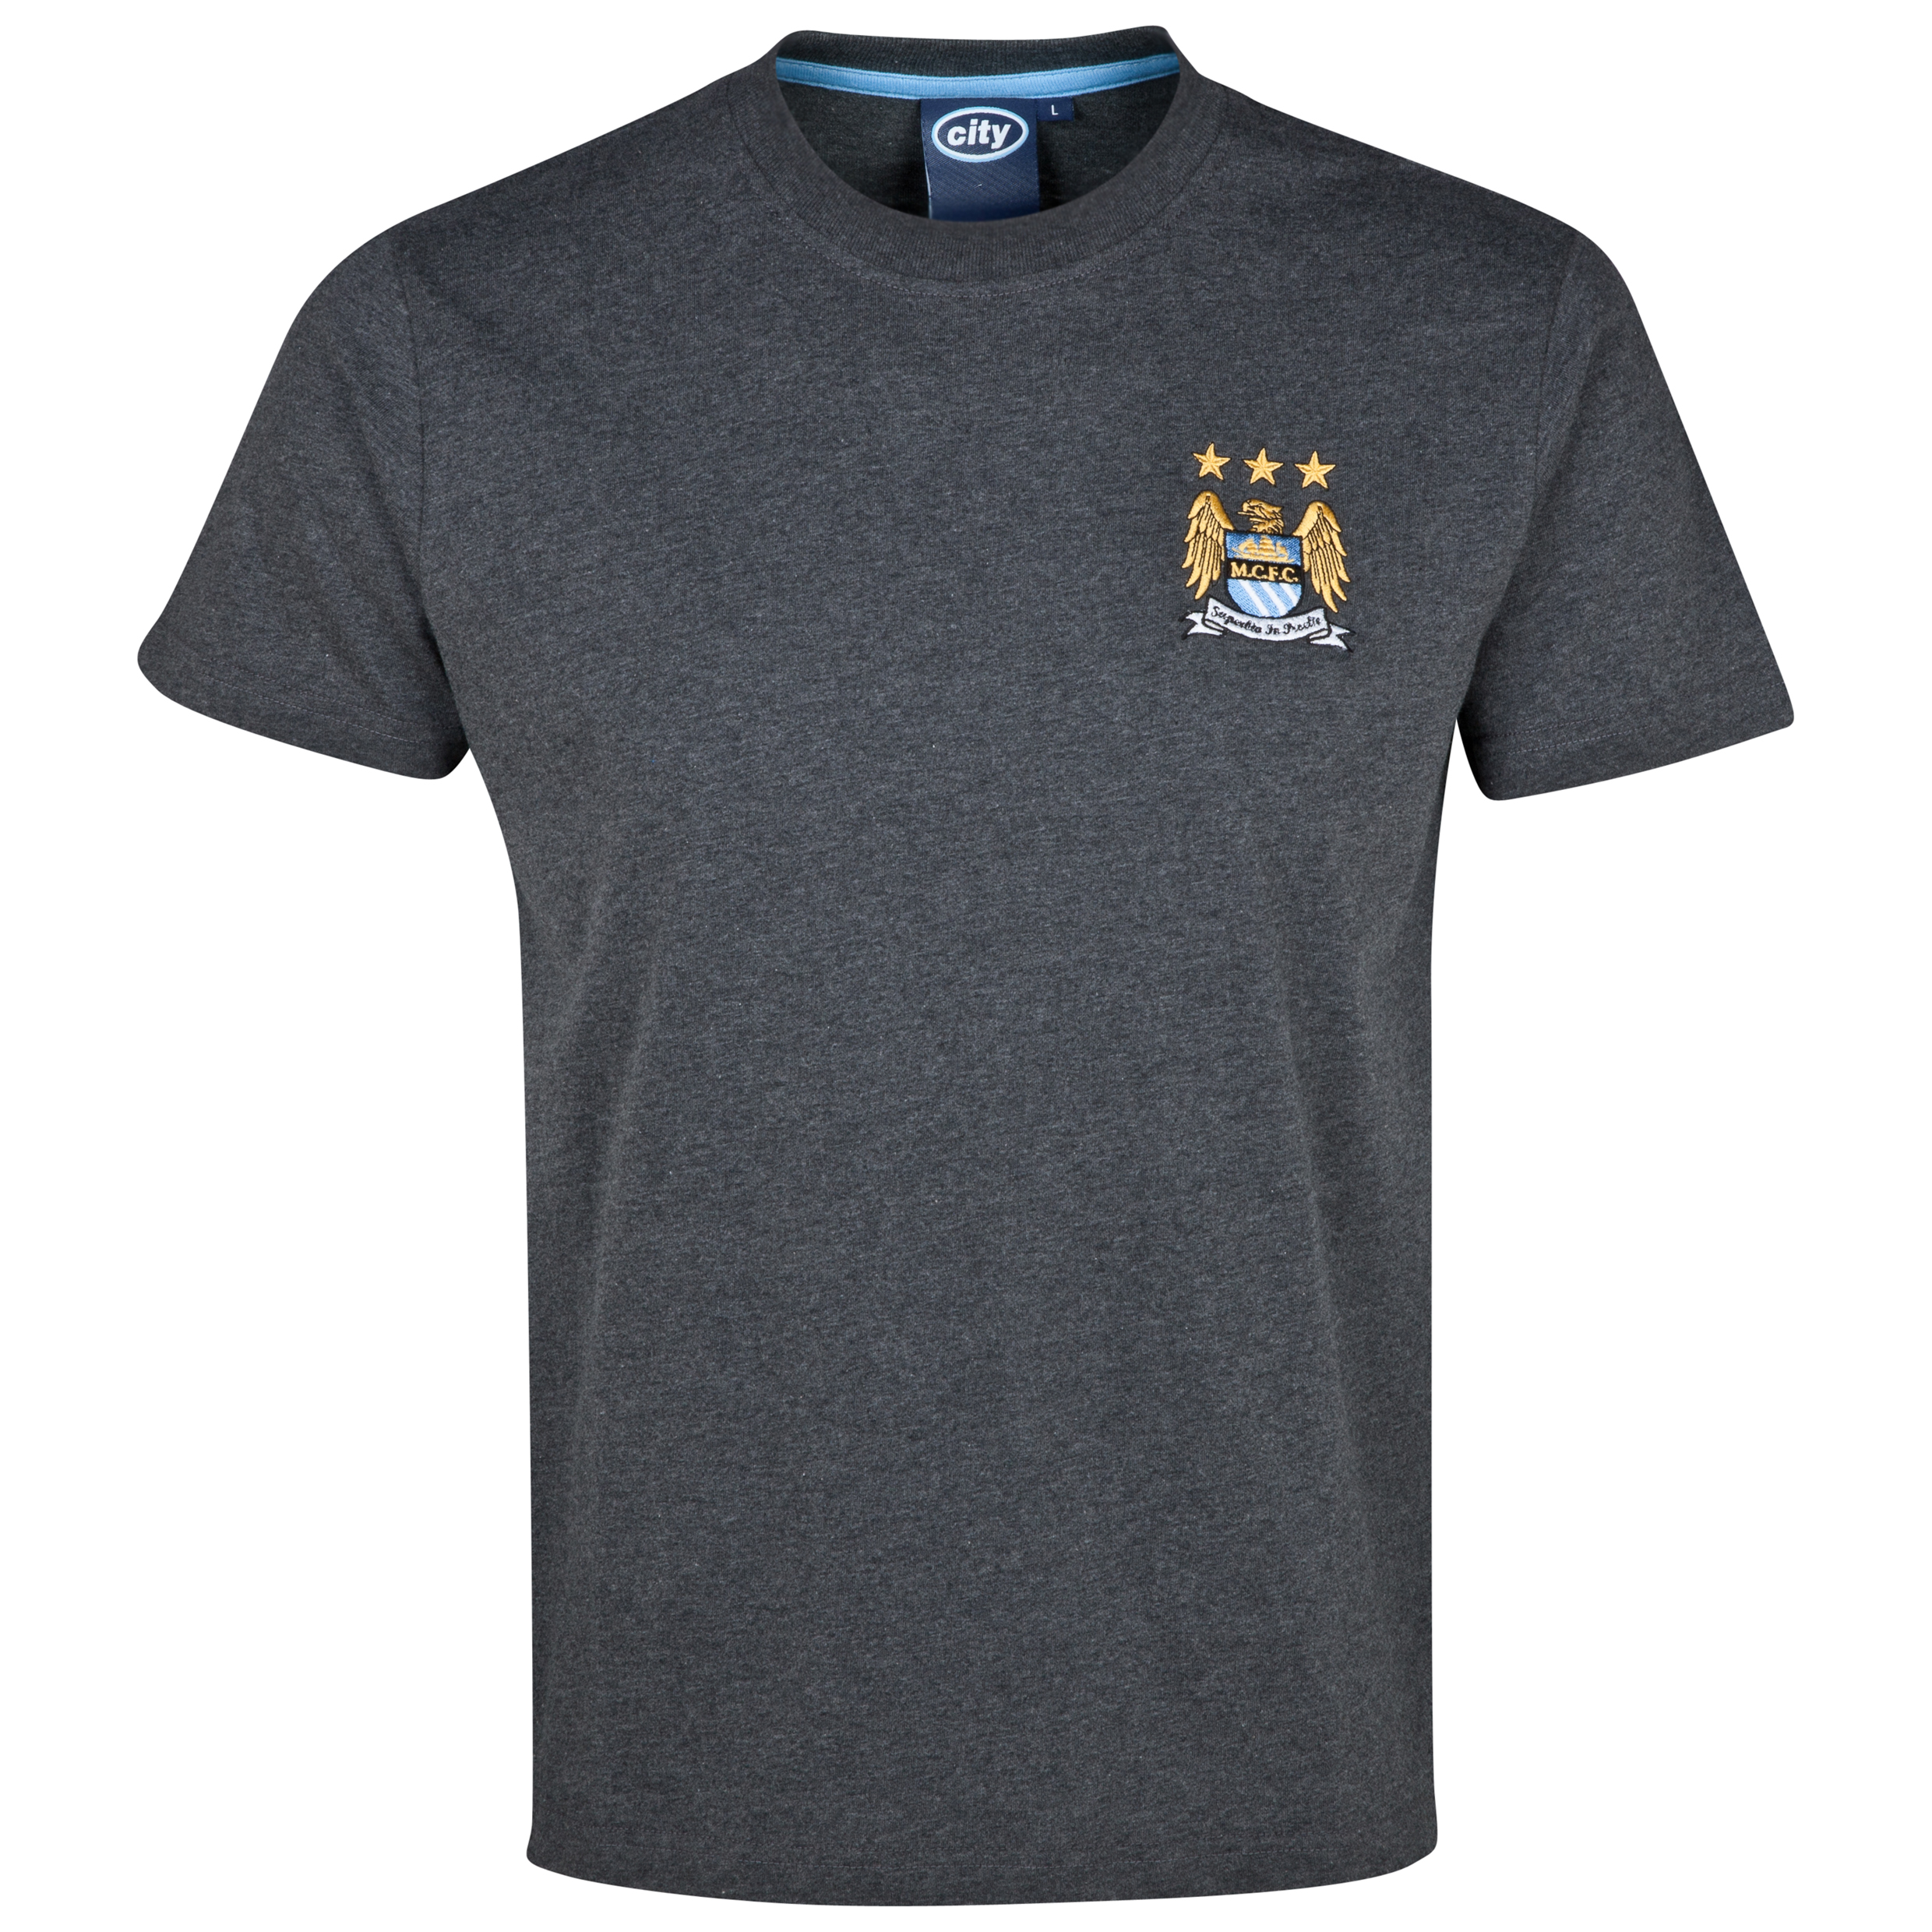 Manchester City Essentials Stitch T-Shirt - Older Boys Charcoal